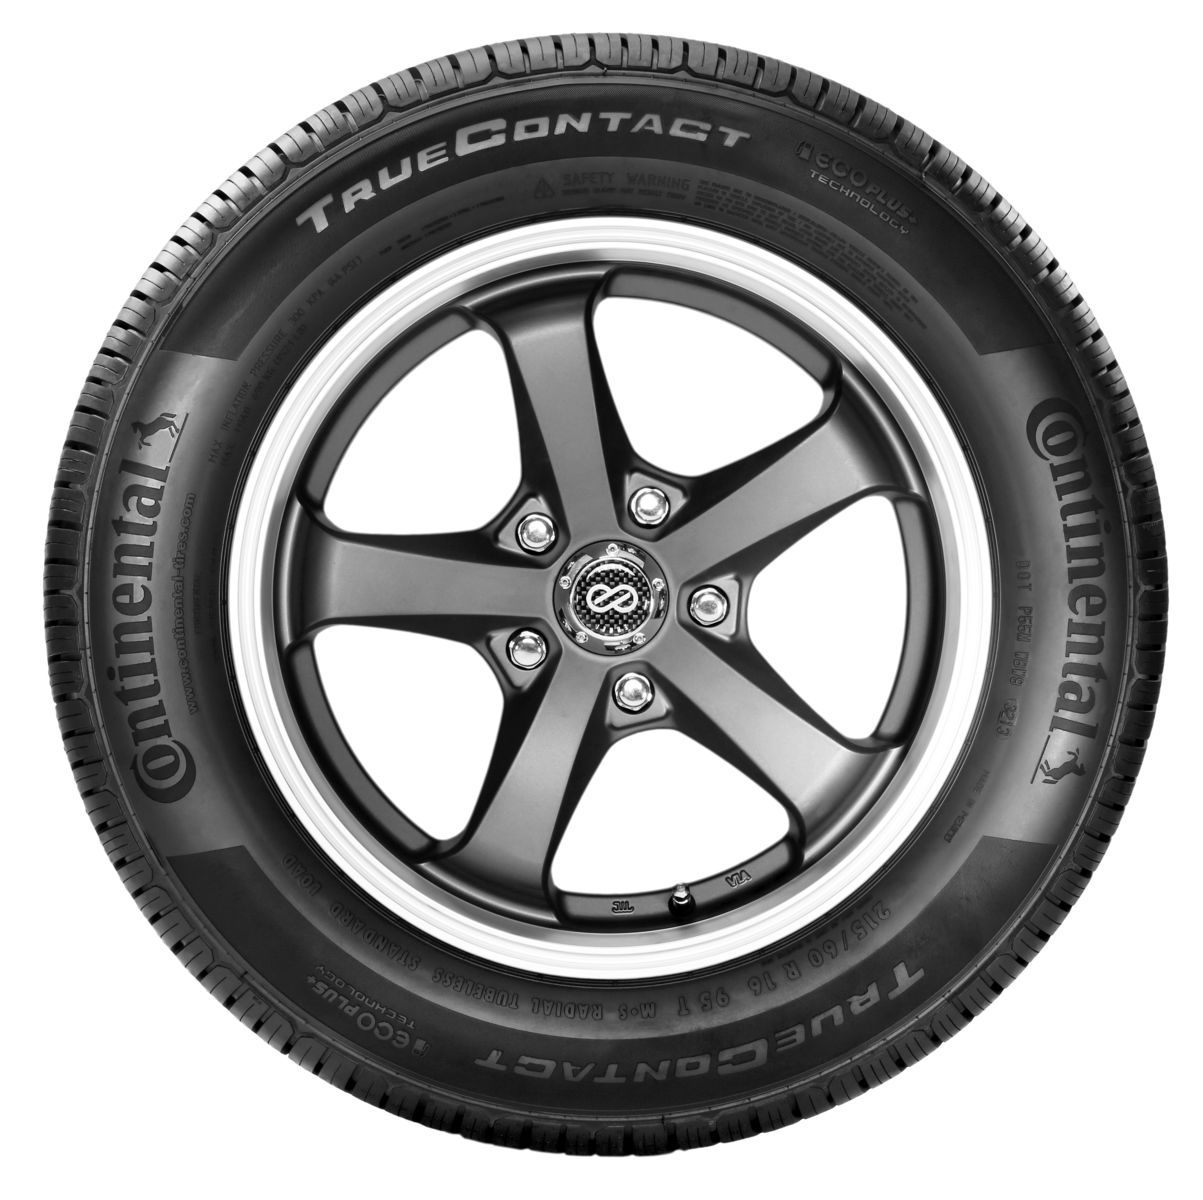   Latest tire from Continental Tire, TrueContact